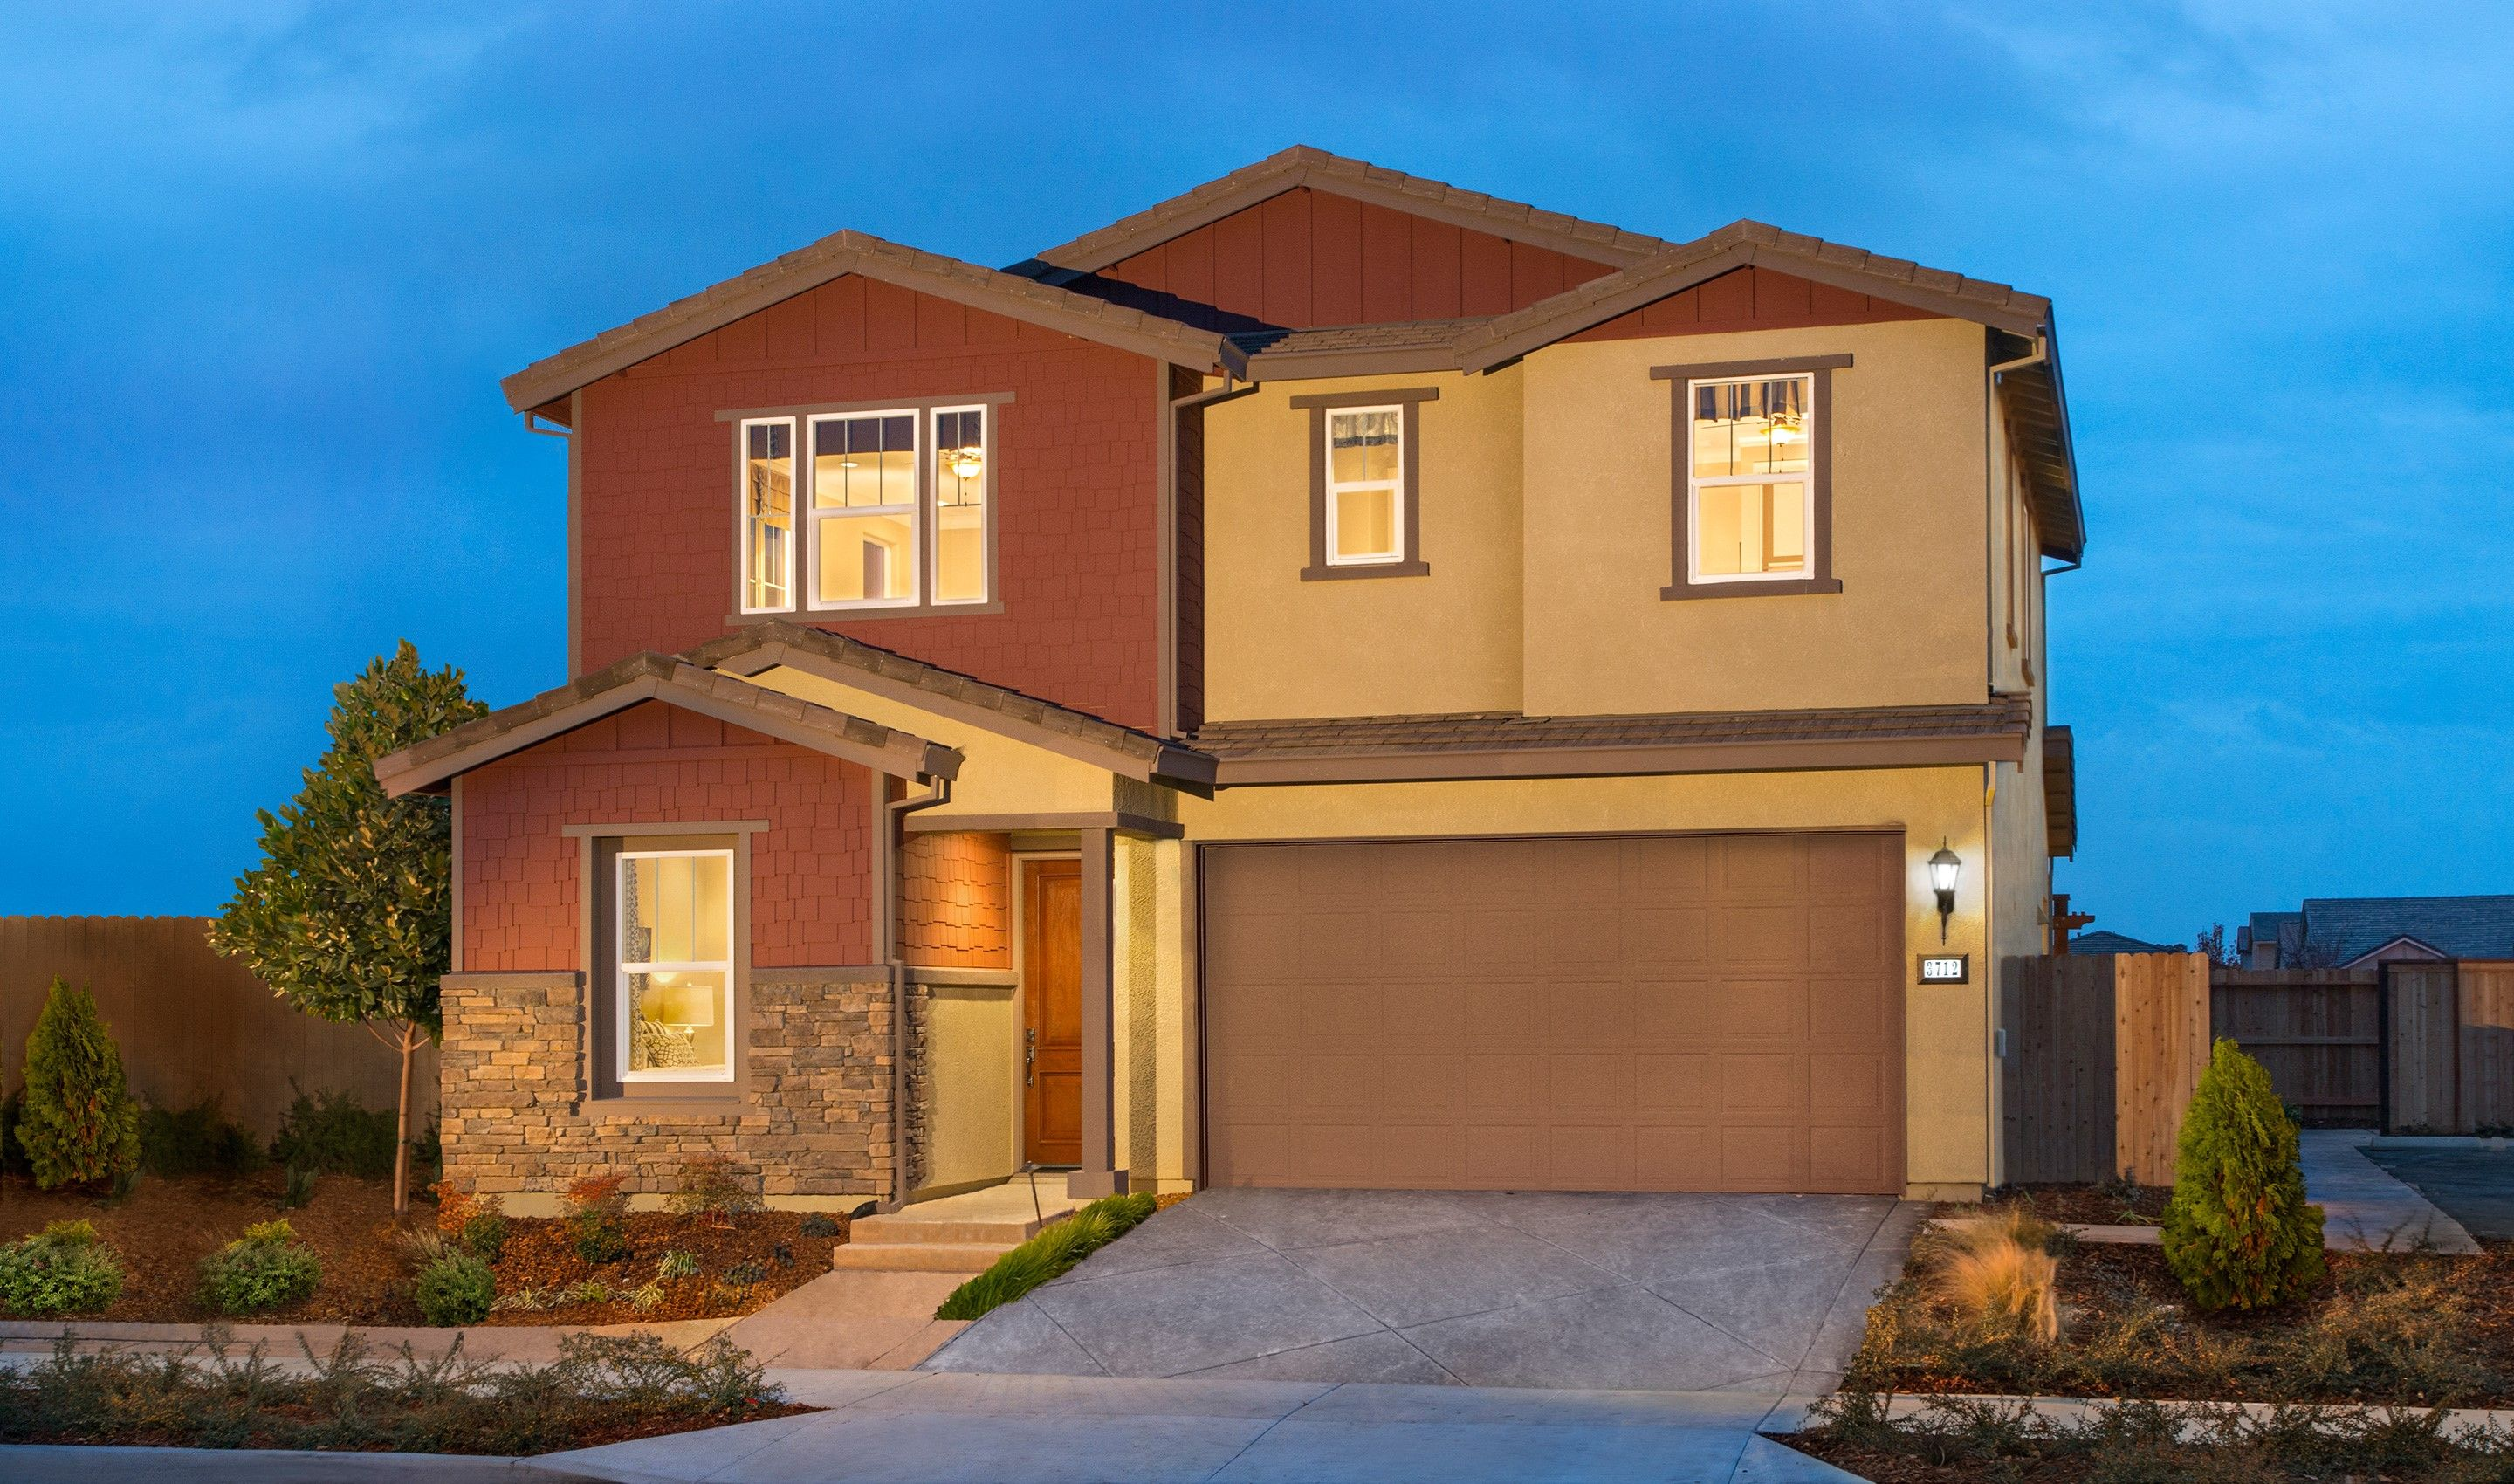 Single Family for Sale at Parkwalk At Westshore - Garden 3700 Manera Rica Sacramento, California 95834 United States